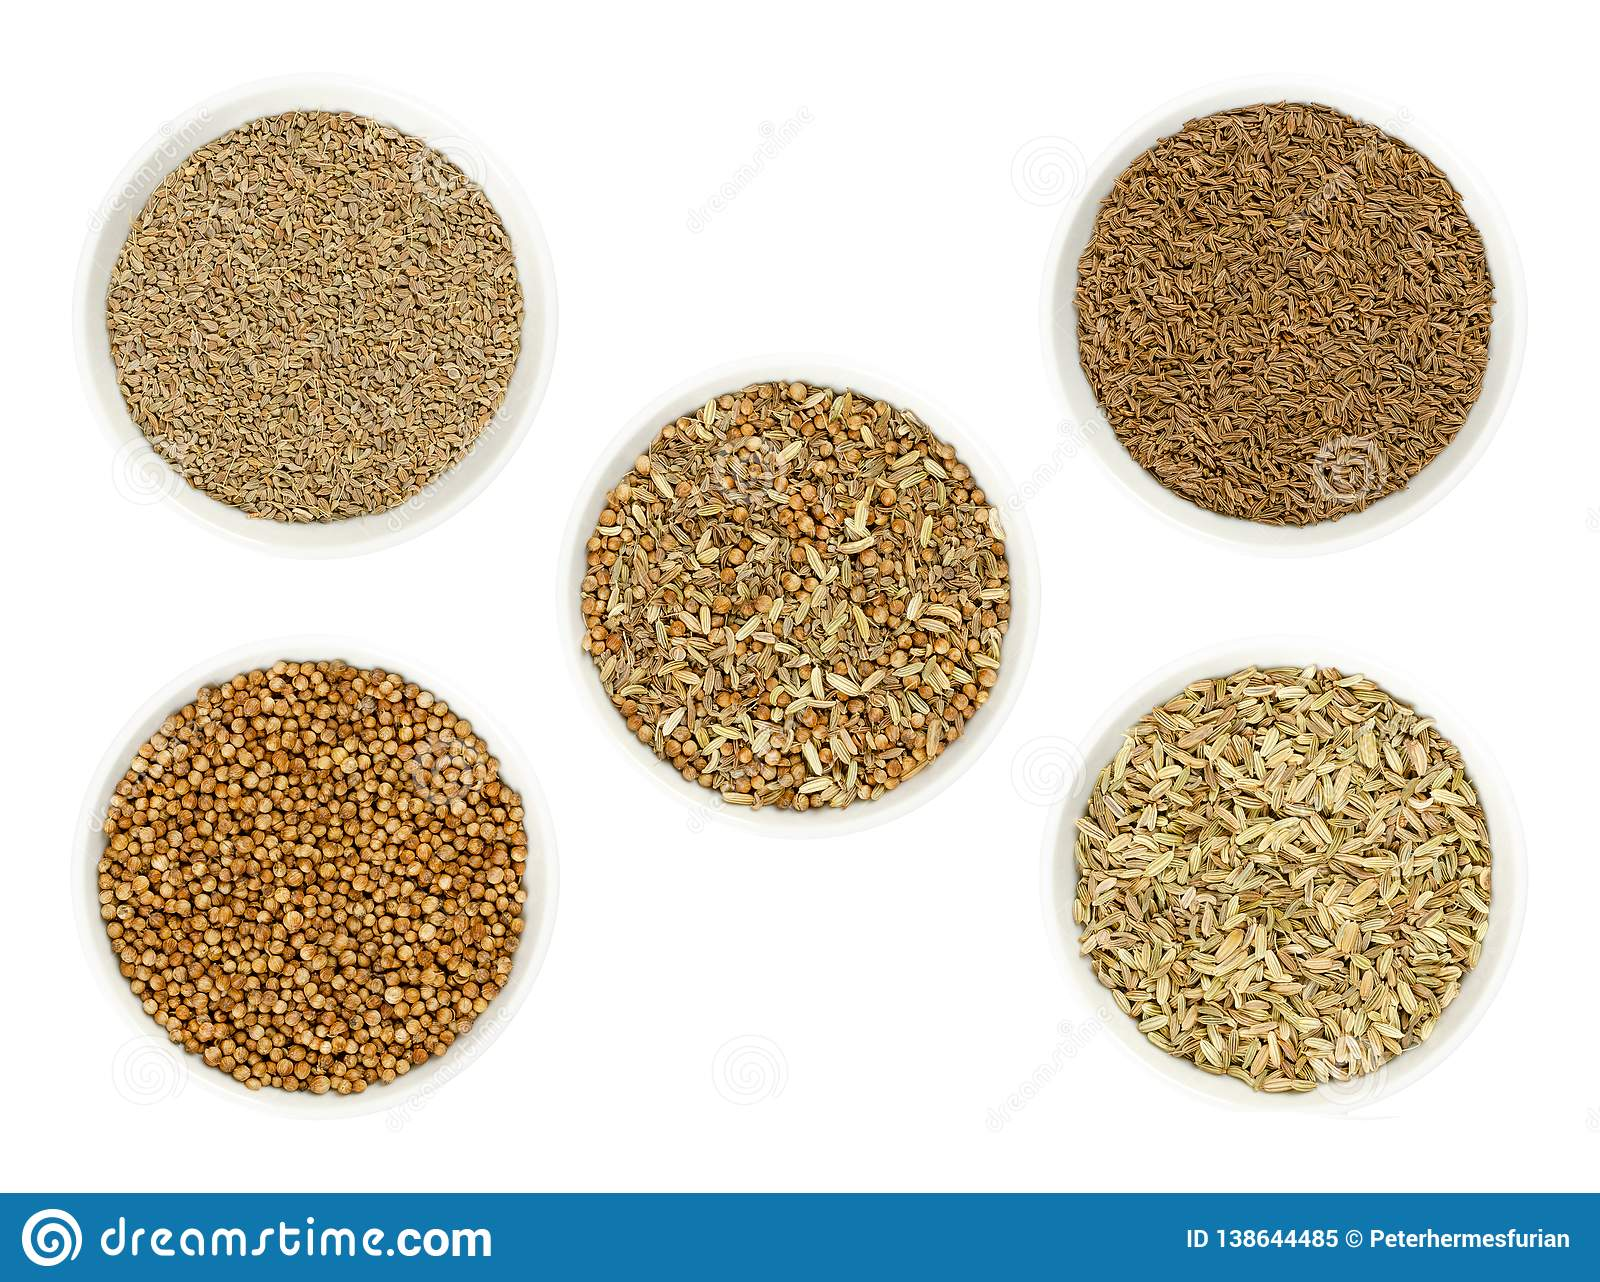 Bread spice mixture surrounded by ingredients in bowls over white